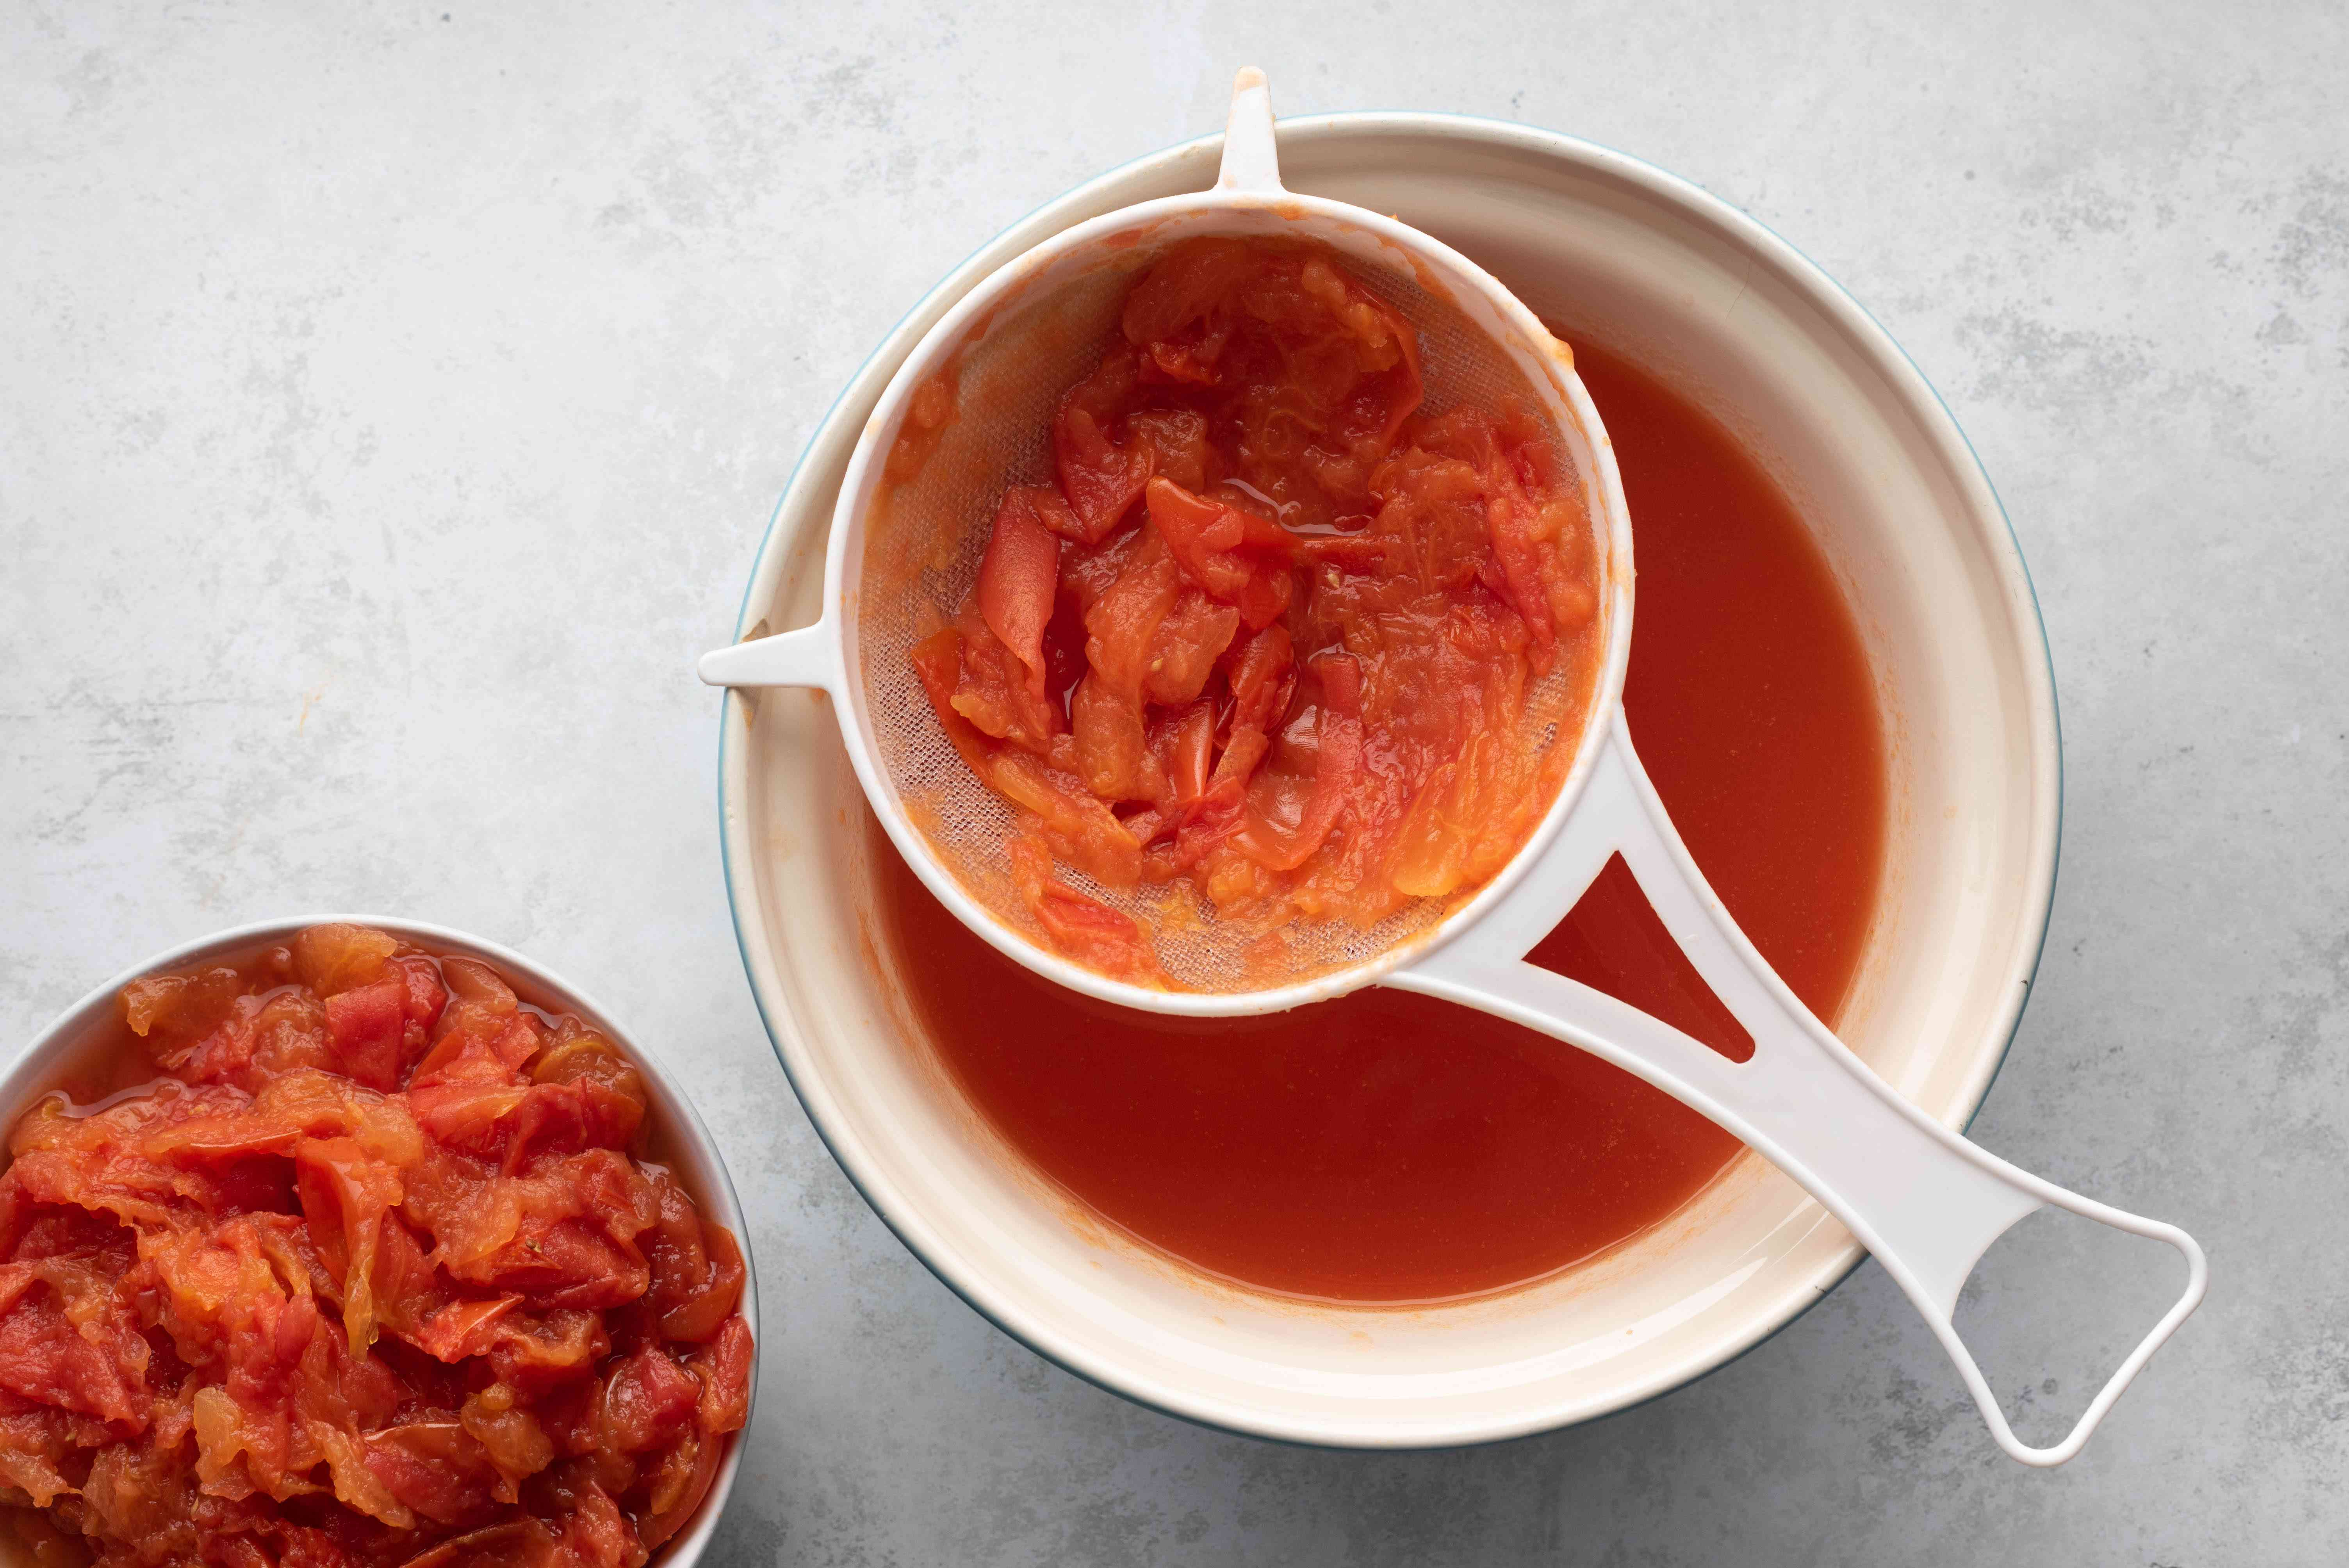 tomatoes passed through a strainer